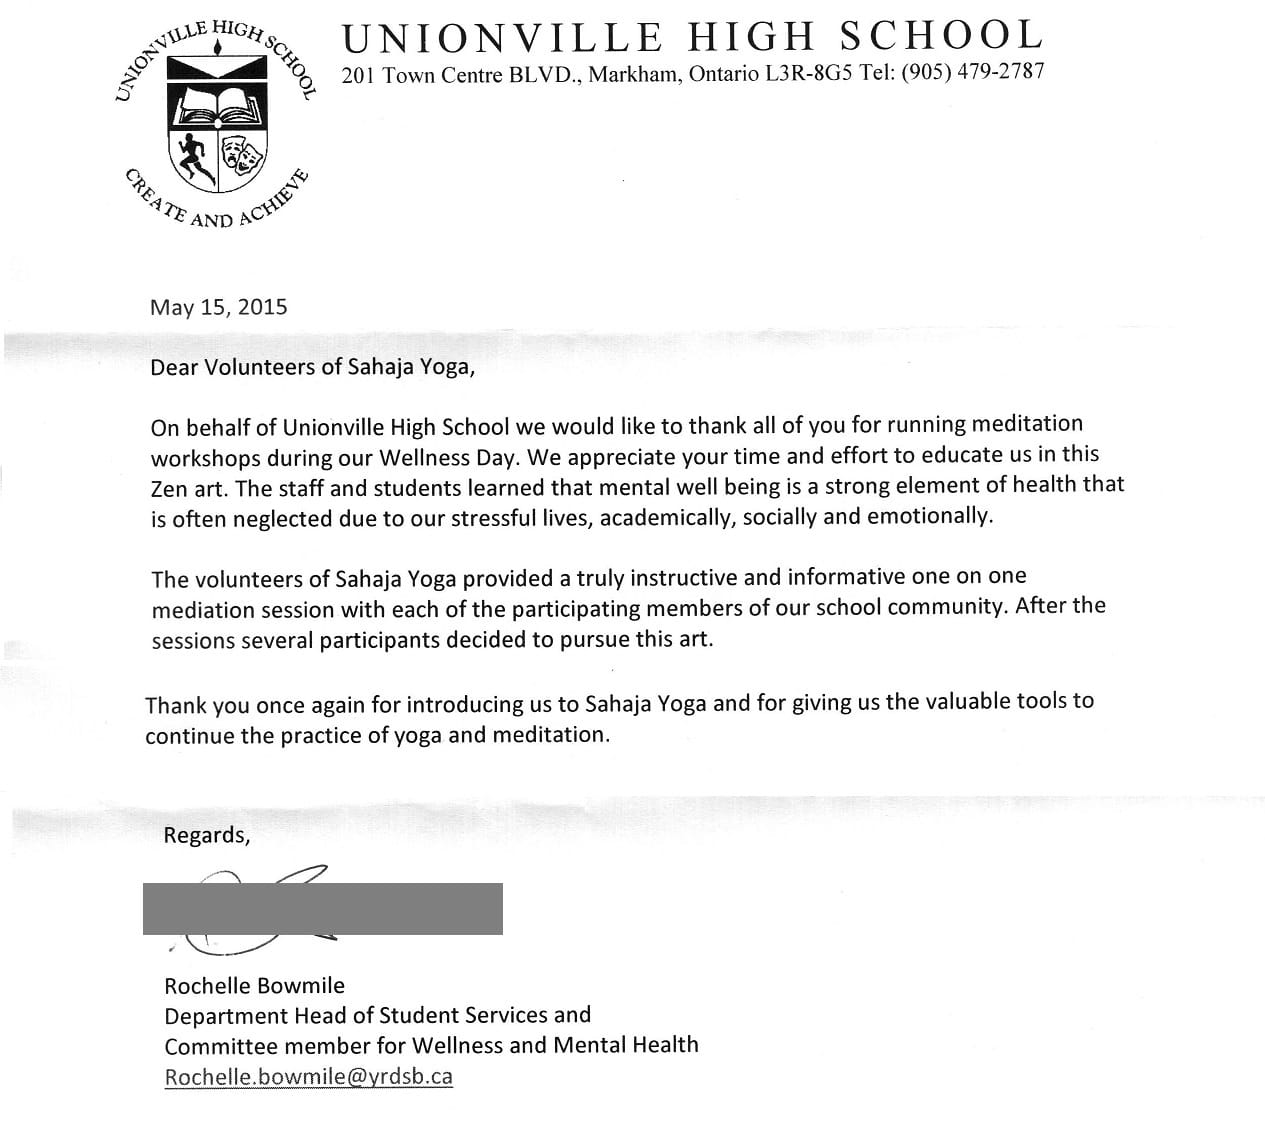 appreciation letter from unionsville highschool _markham web